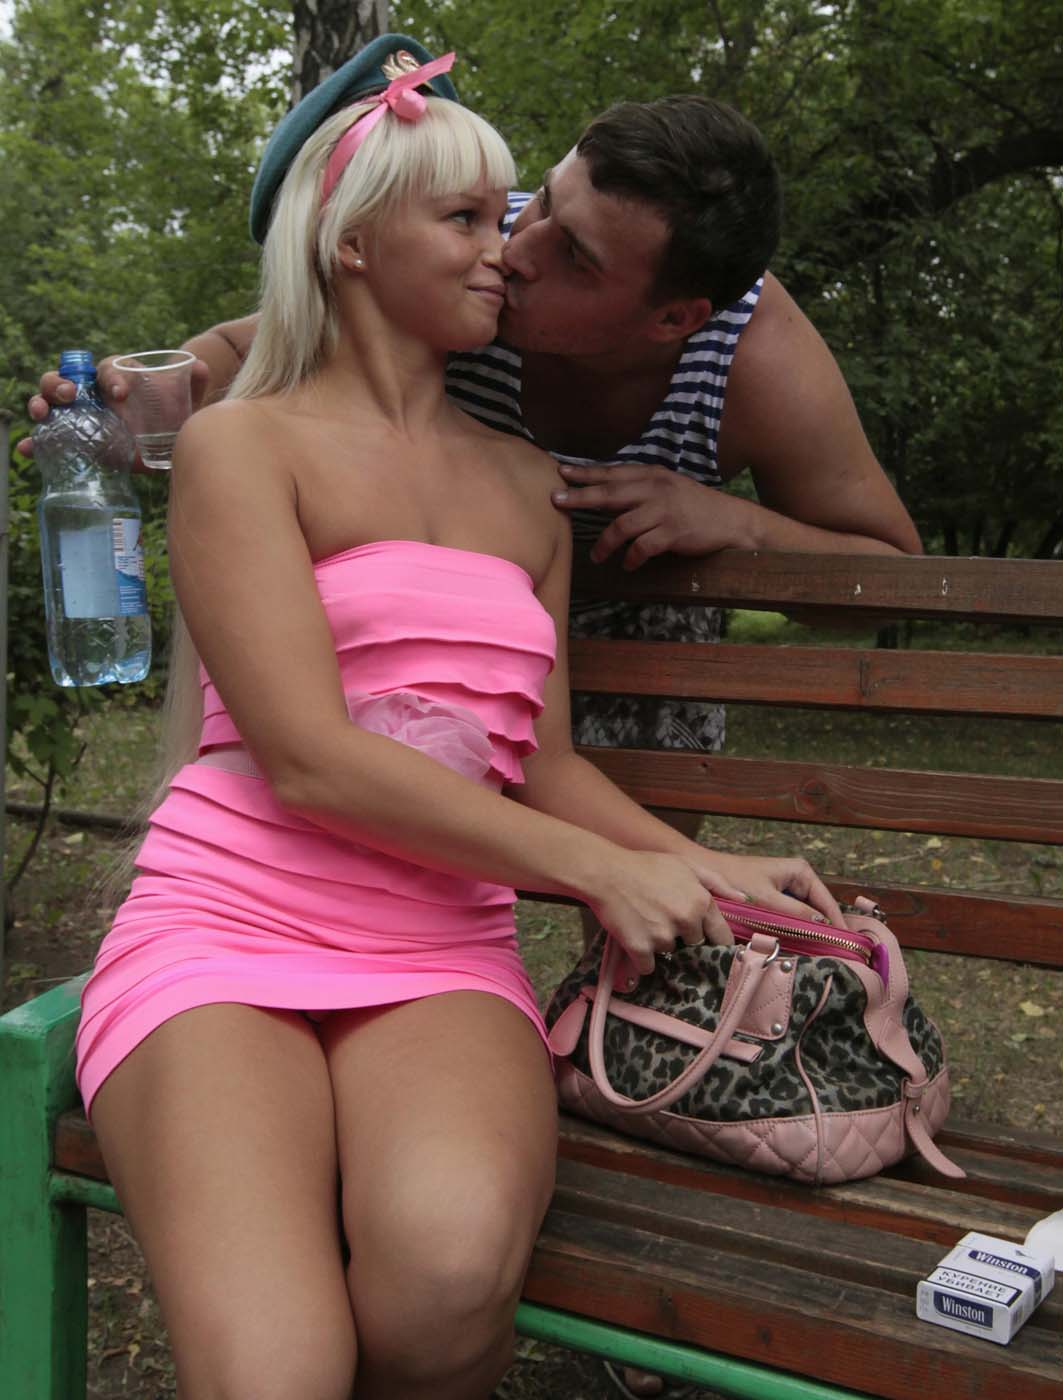 Moscow  WikiSexGuide  International World Sex Guide